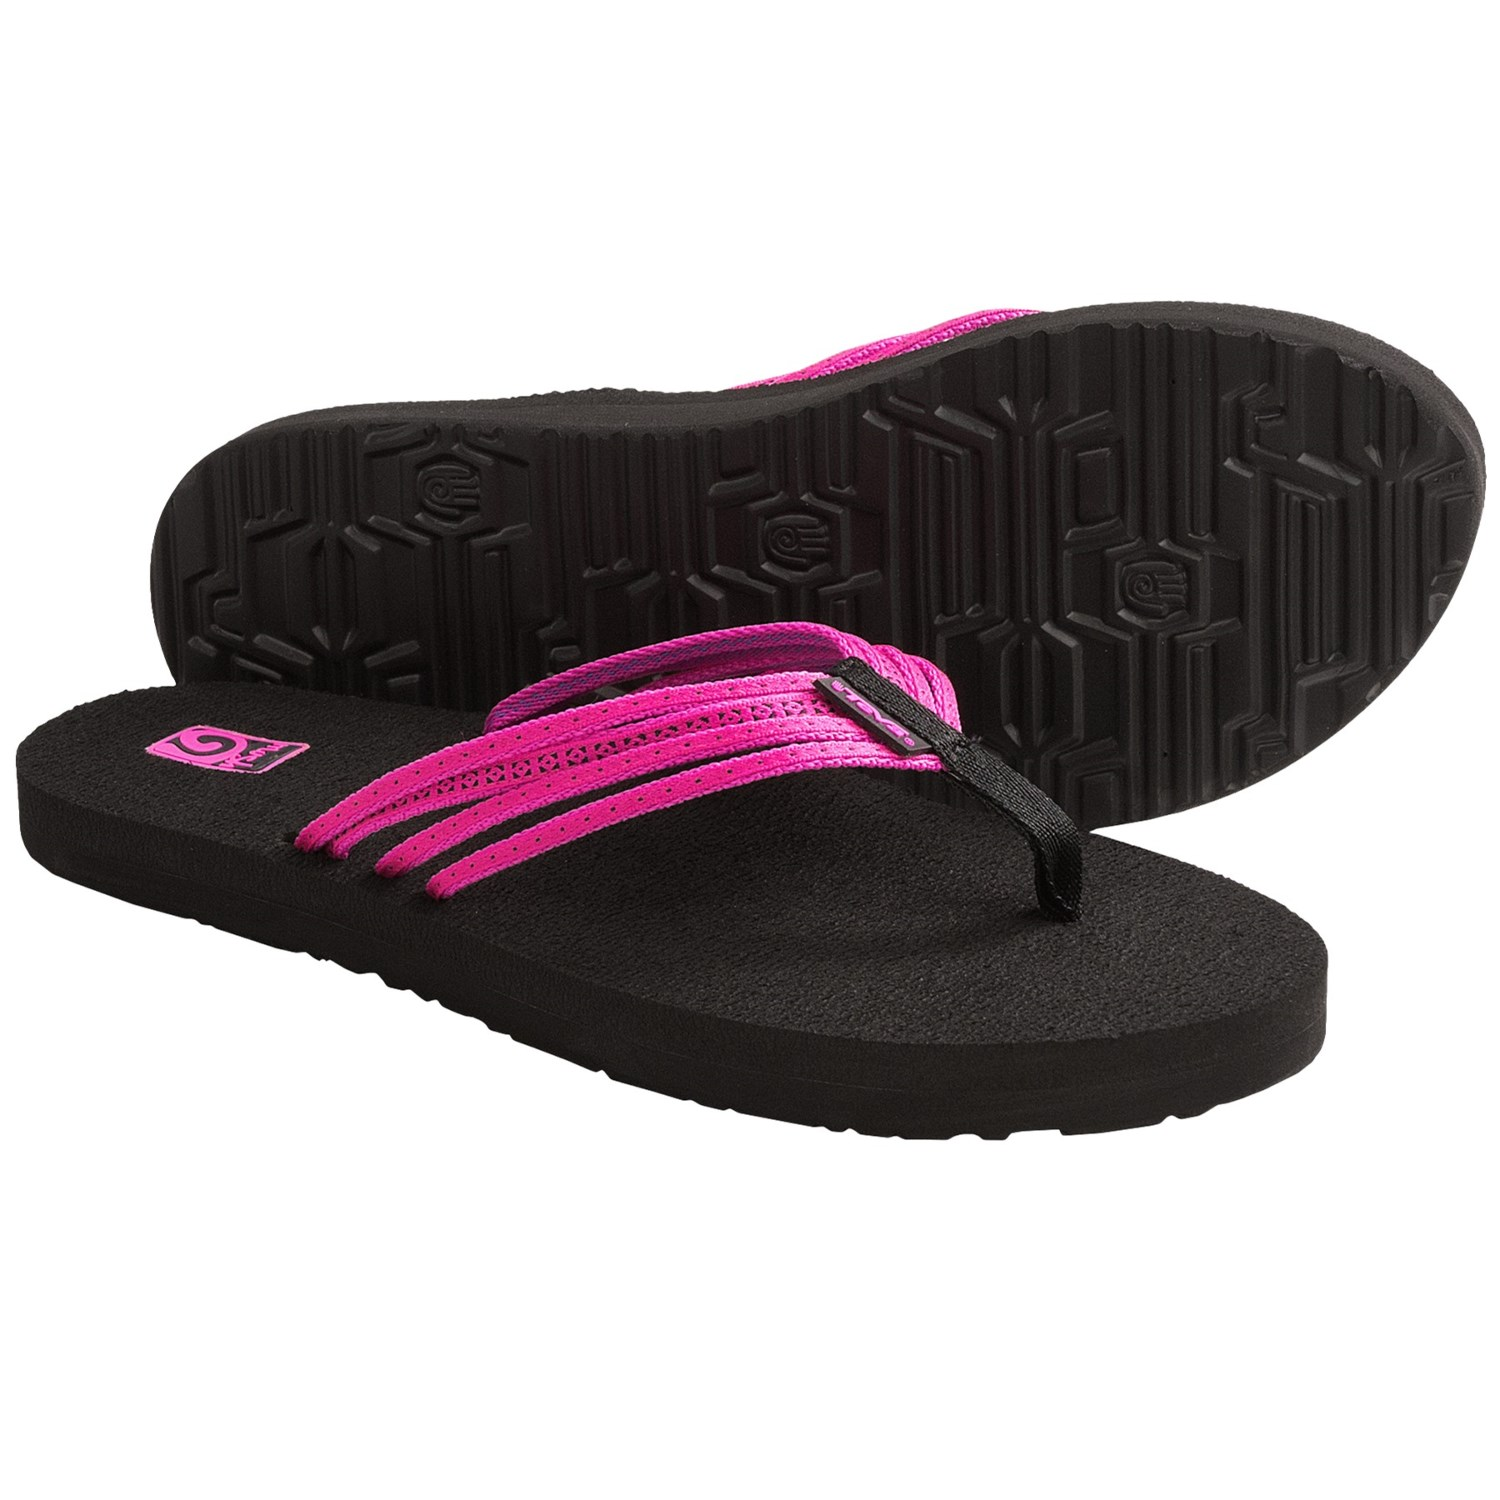 f01f24ebe Teva flip flops - Lookup BeforeBuying